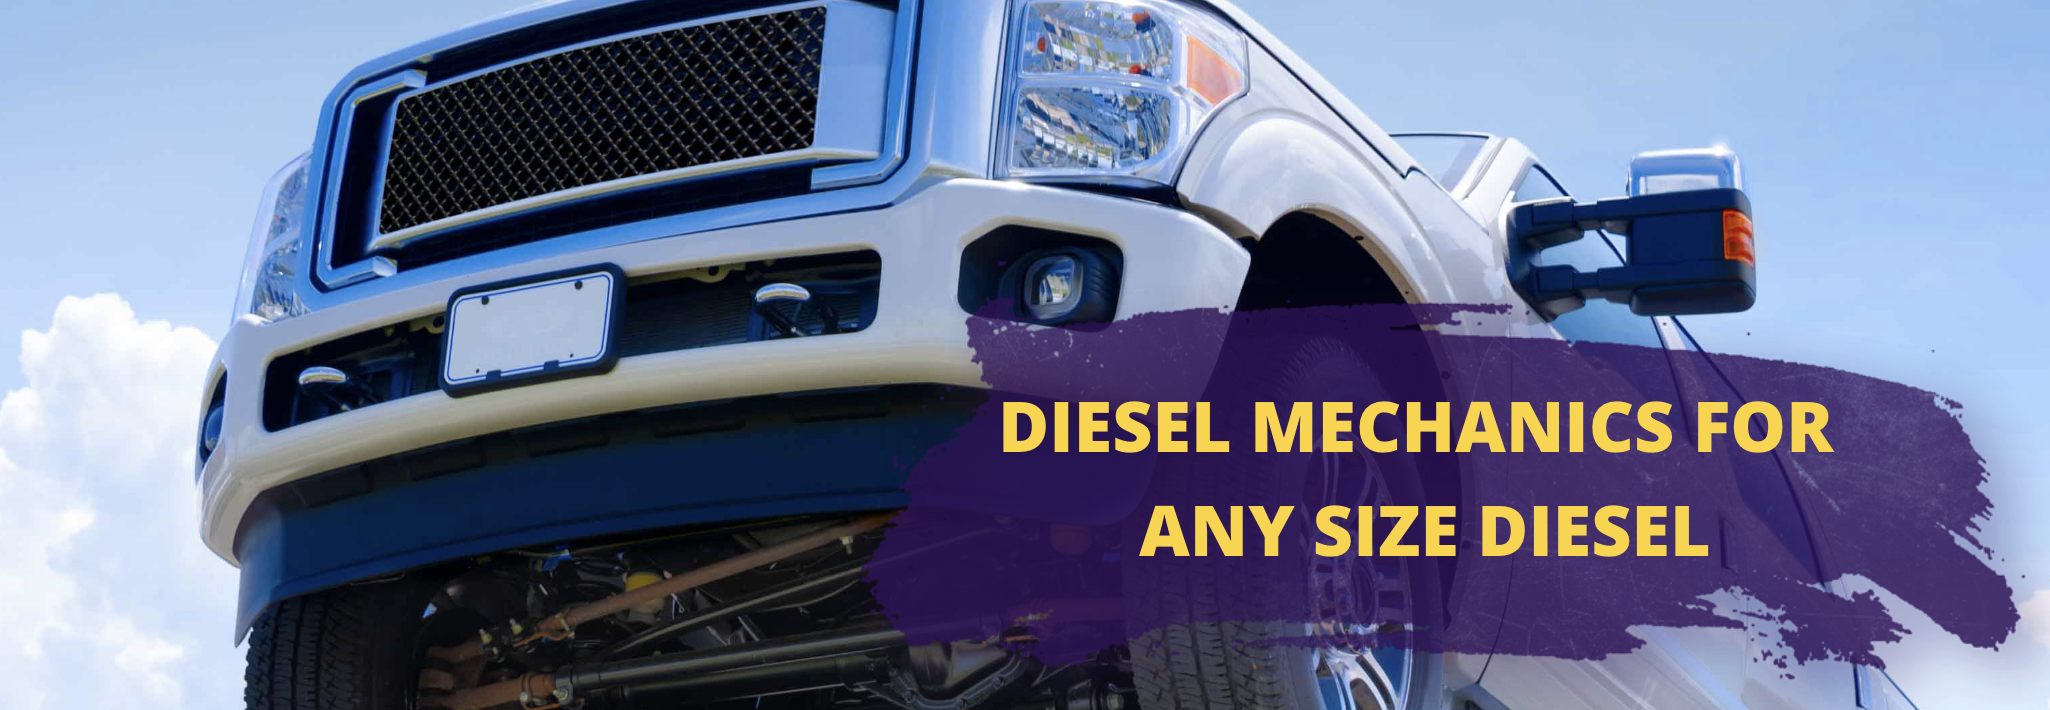 Dale's Auto Repair has specialized technicians for any size diesel vehicle maintenance.